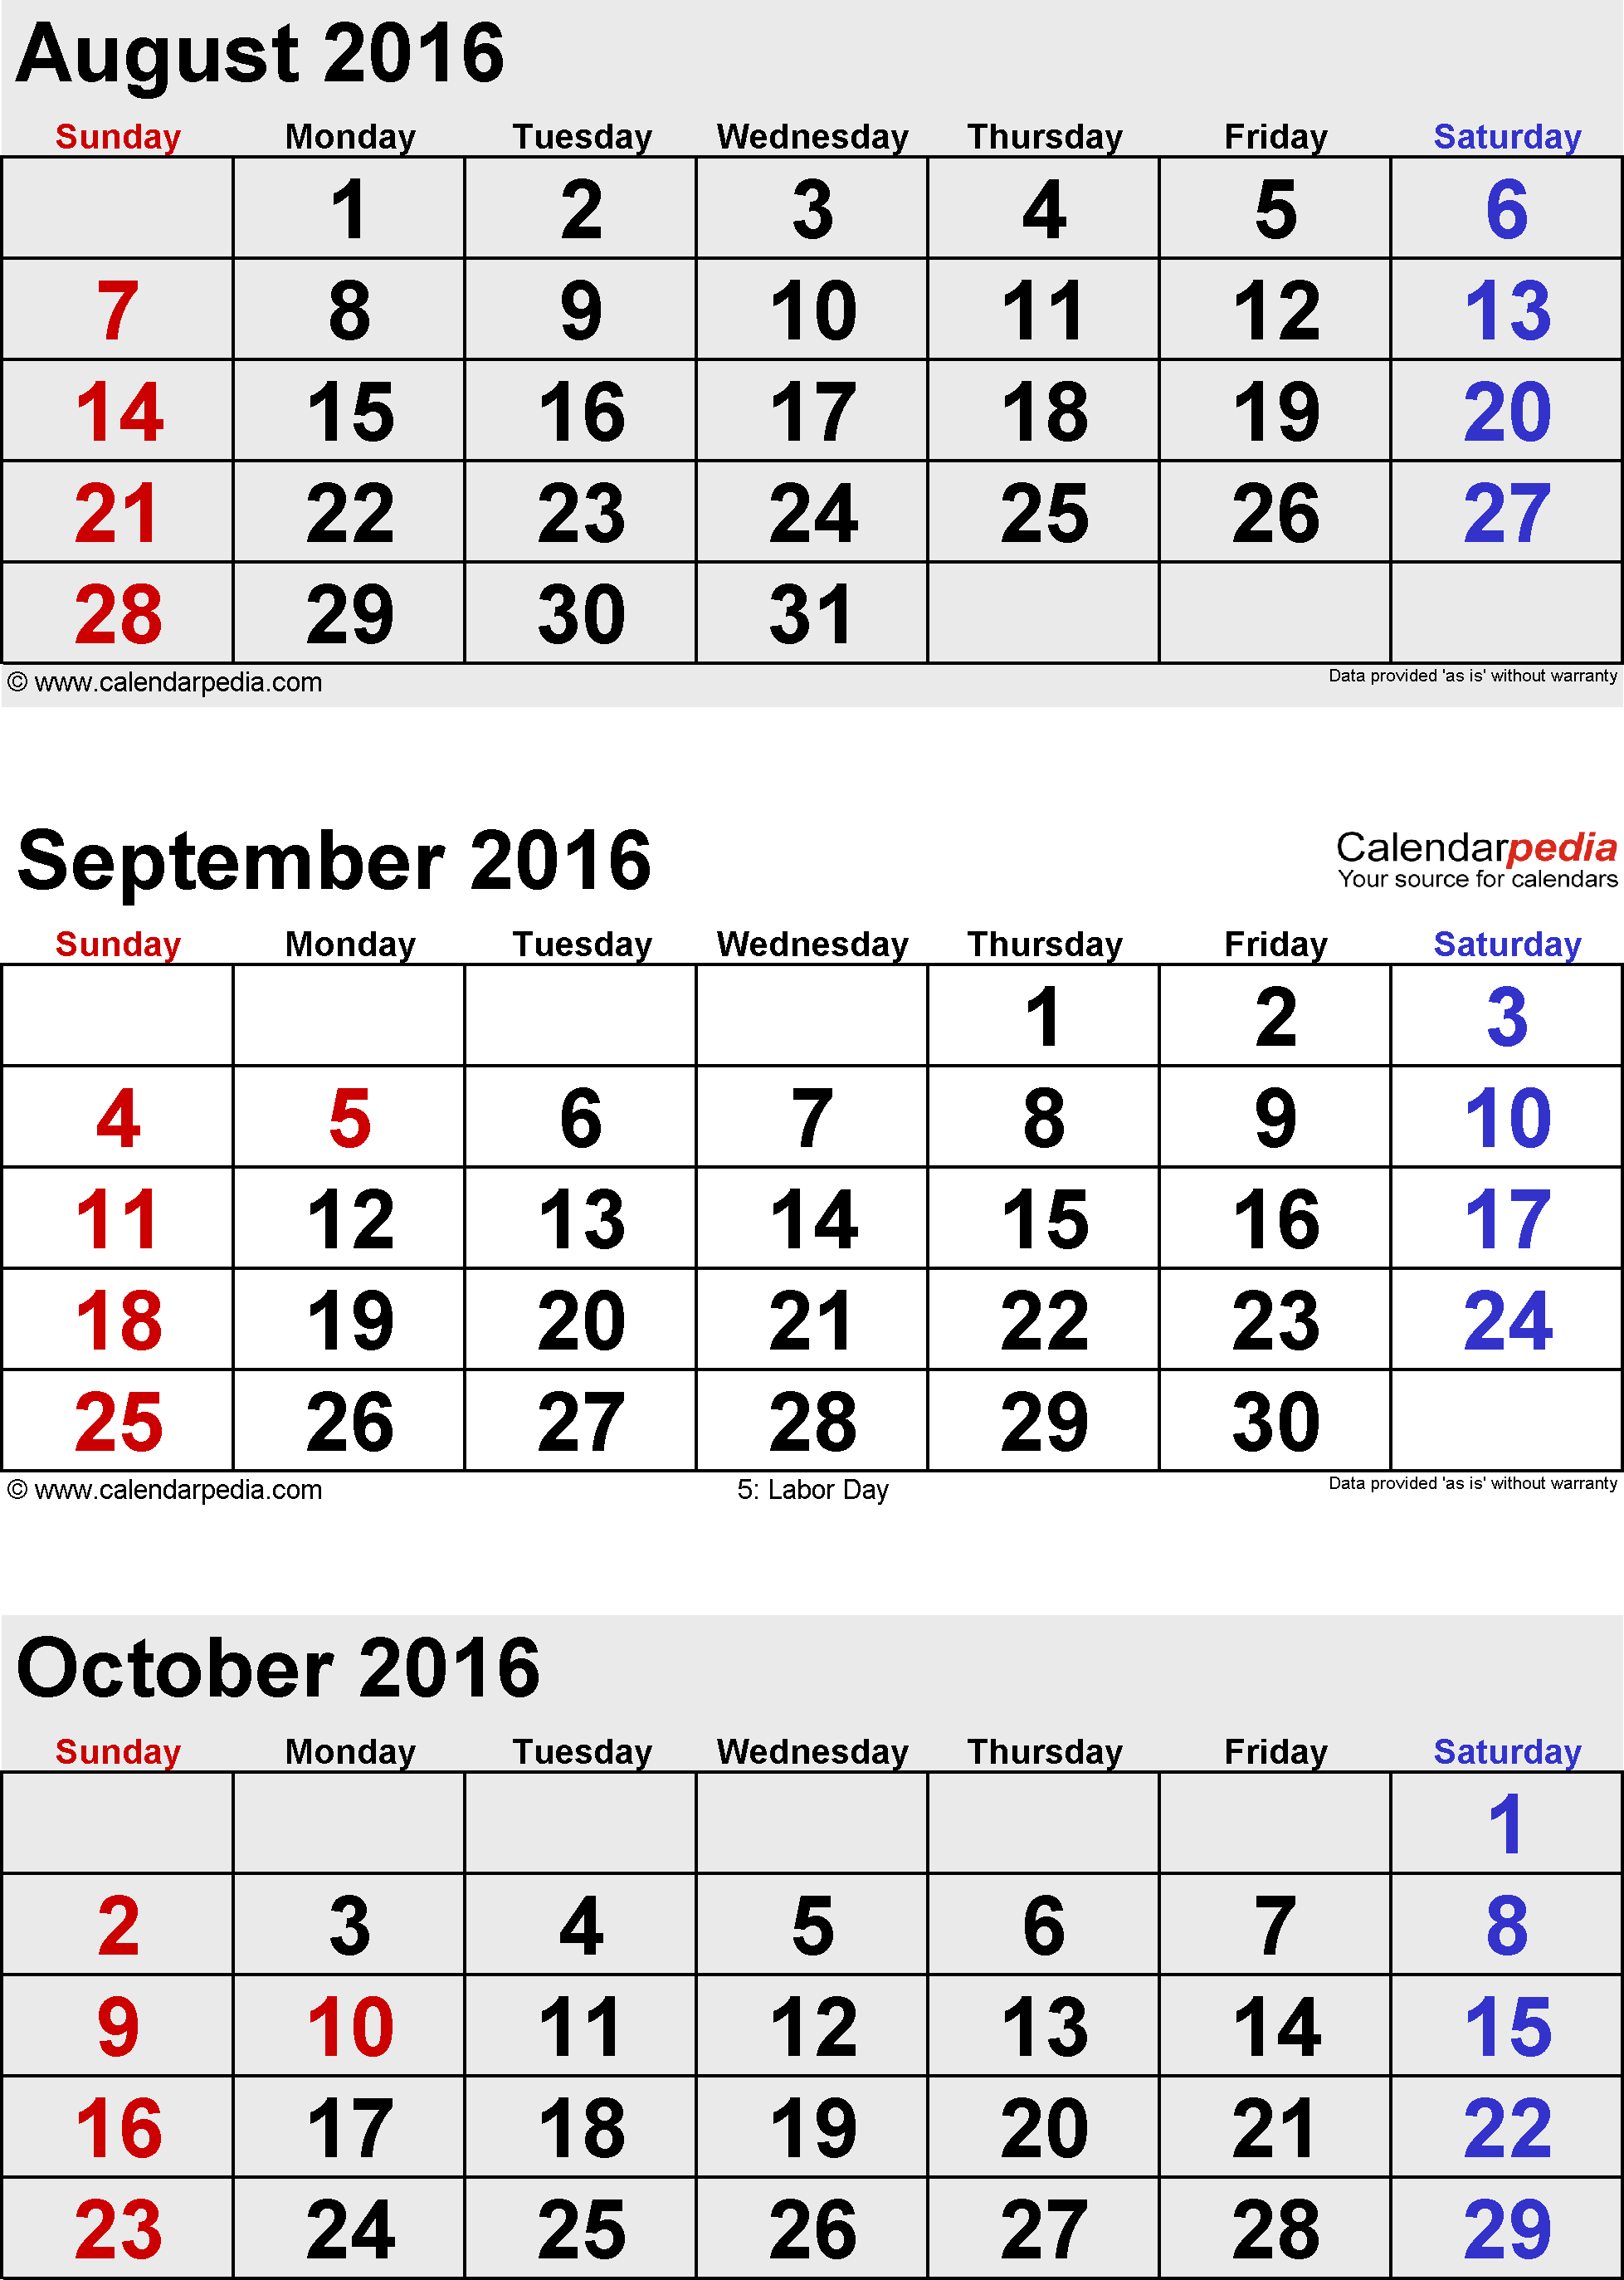 3 months calendar September/October/November 2016 in portrait format